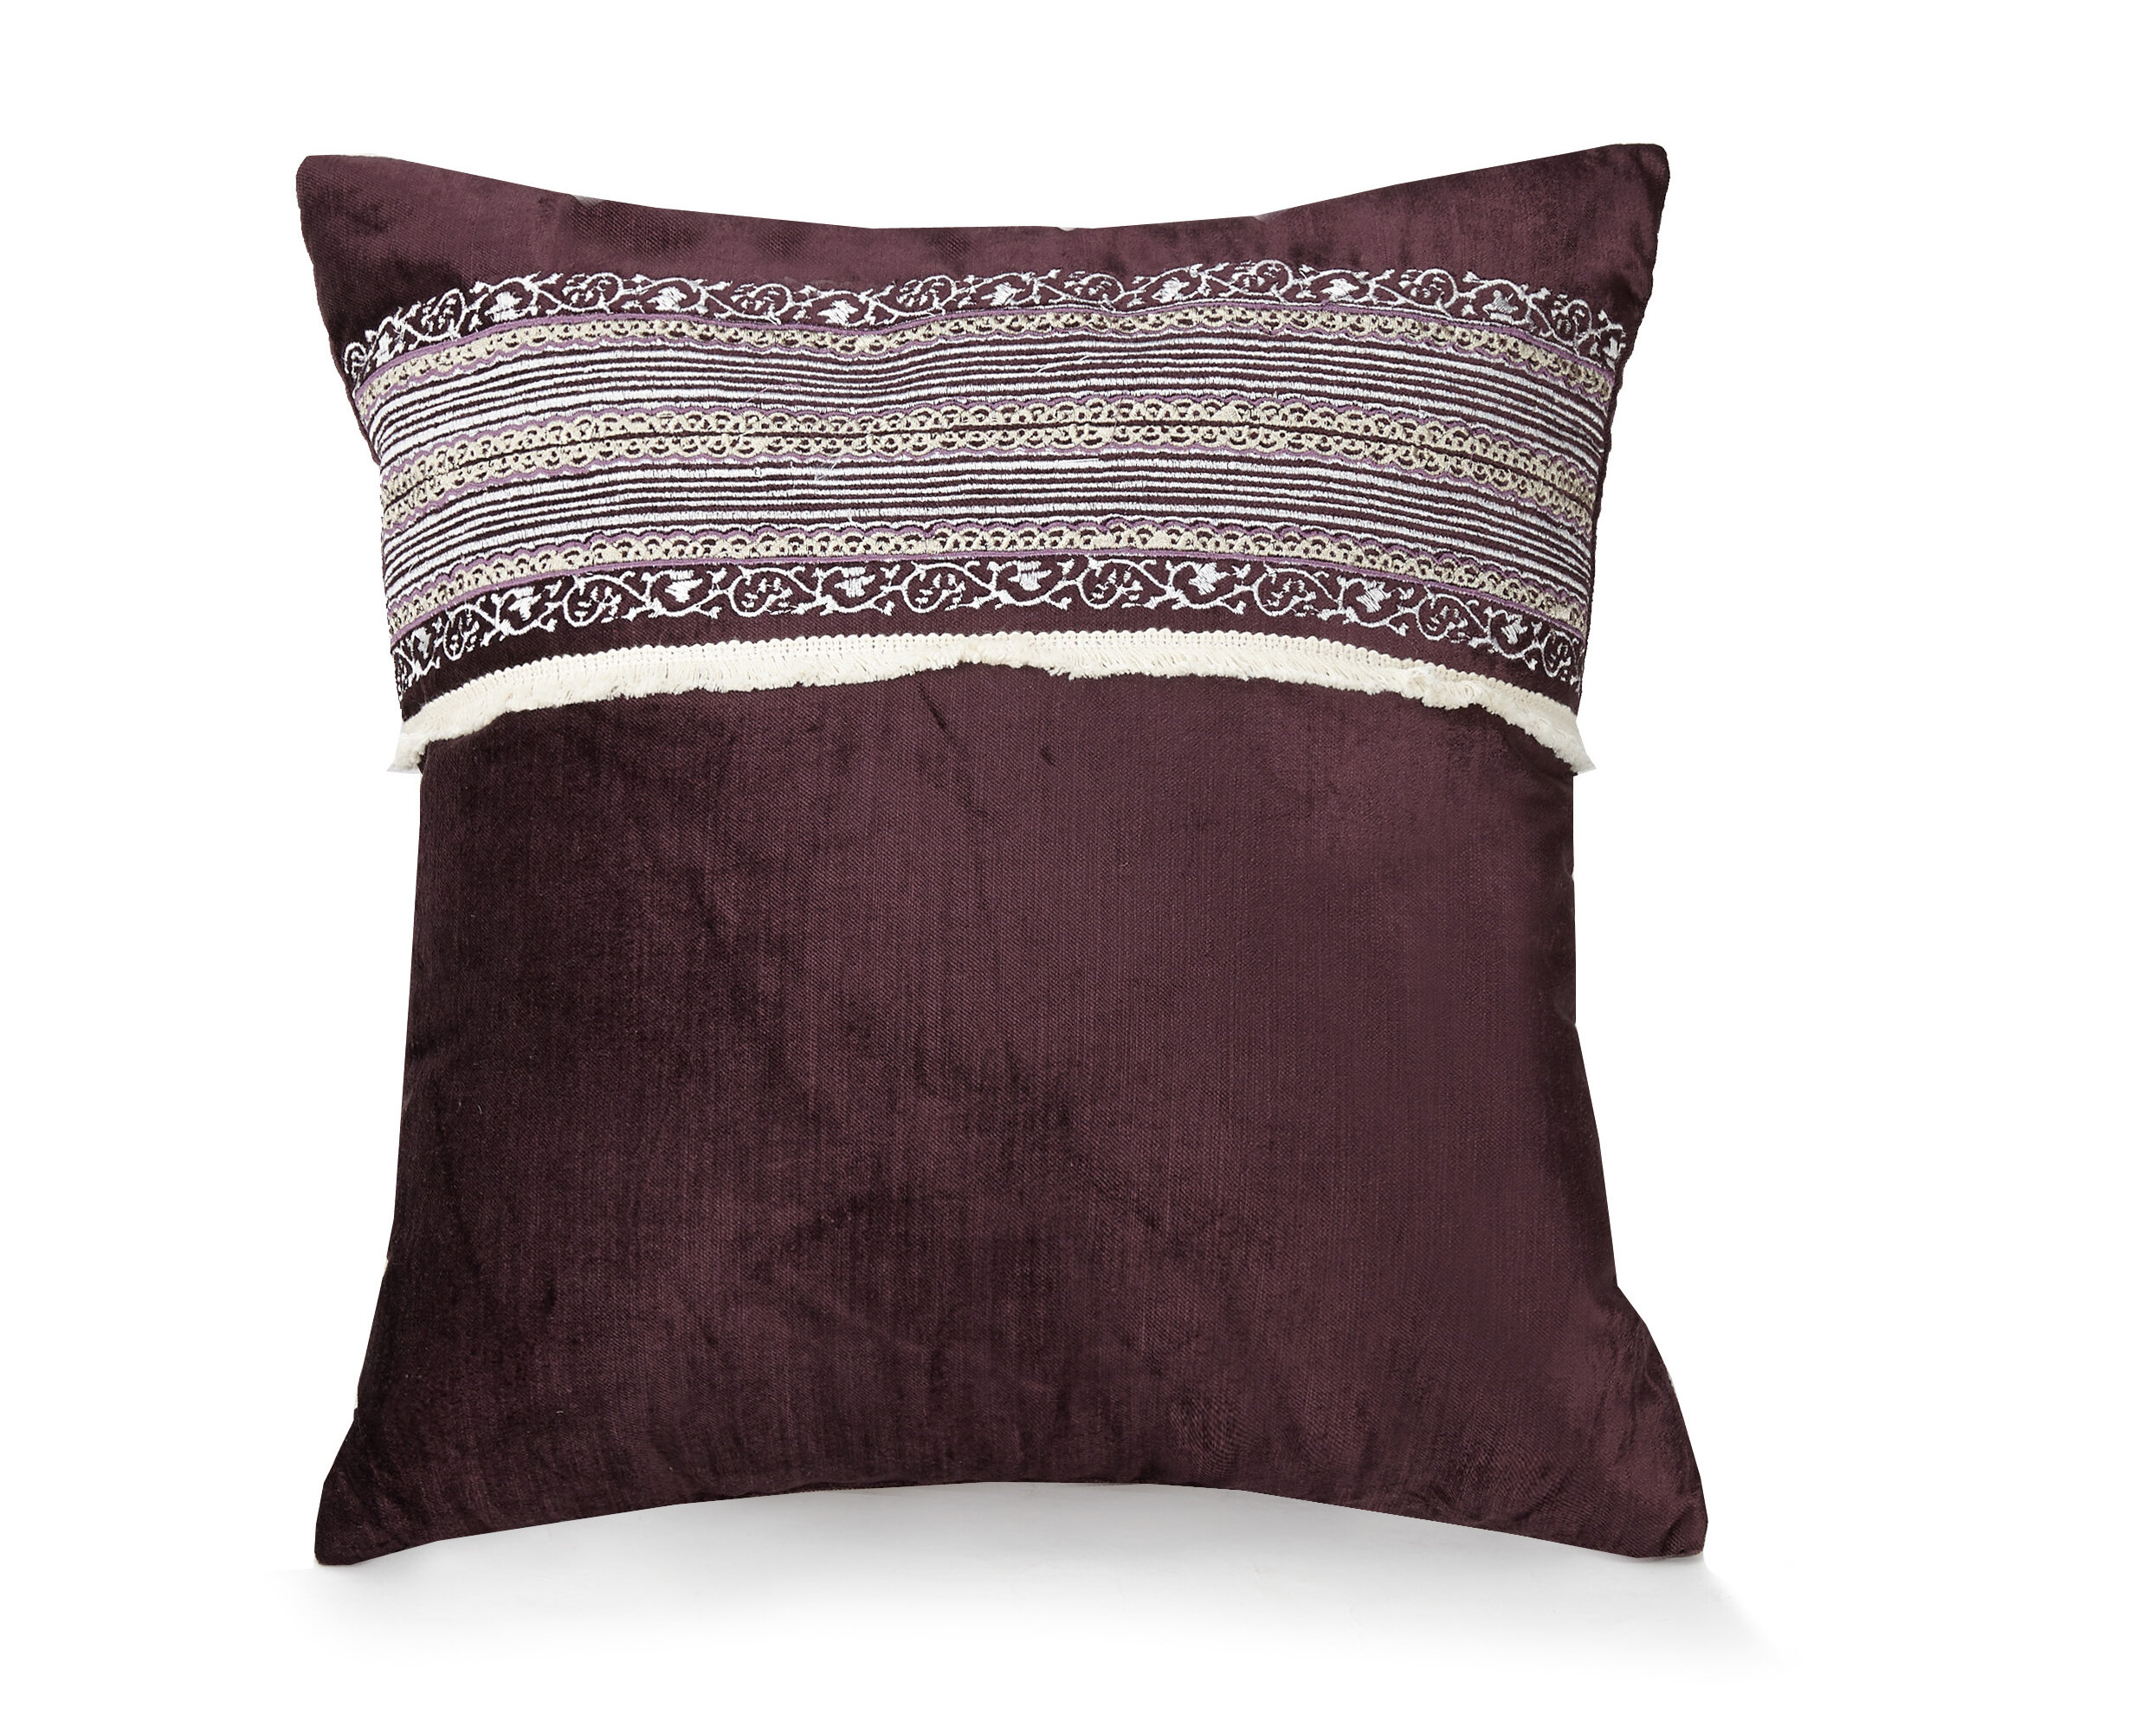 Jessica Simpson Home Jacky Throw Pillow Wayfair